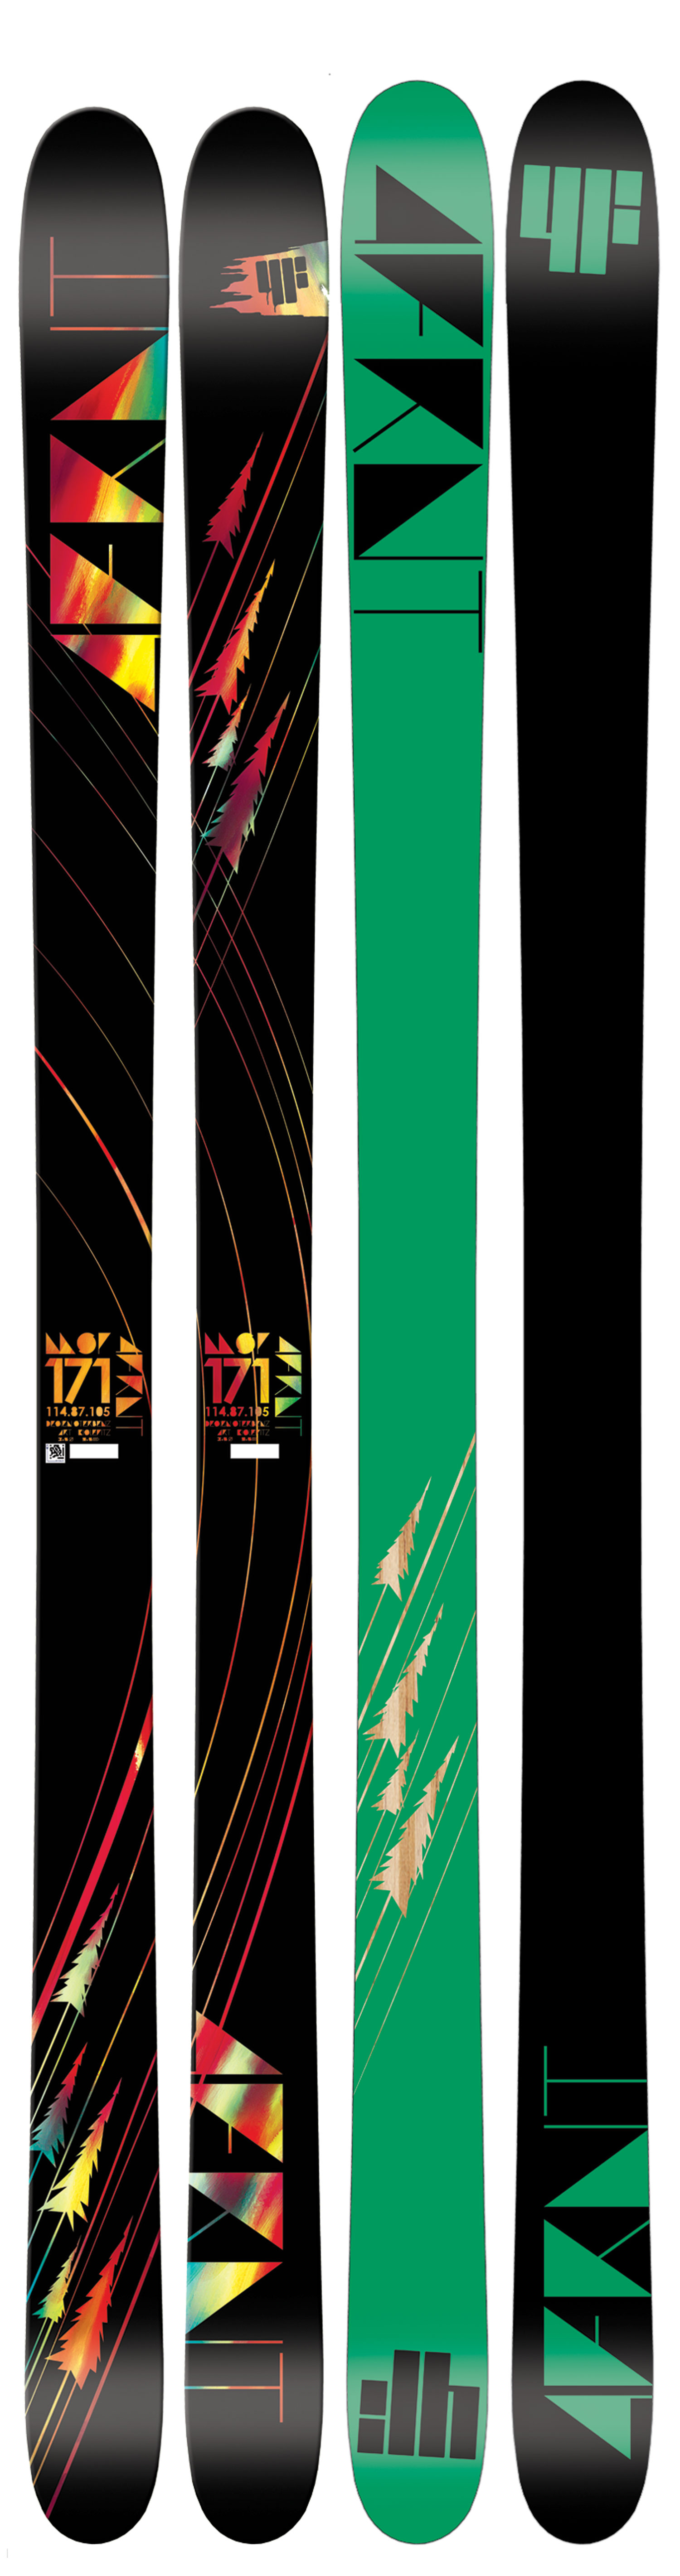 "Ski ""My all mountain weapon of choice"" - the 4FRNT MSP SkiKey Features of the 4FRNT MSP Skis: Mega Block Woodcore Deflect ABS Sidewall Dampening System 45 Q45 Fiberglass Glosstop Topsheet ISO-SPORT Sintered 2000 Base 360 Full Wrap Edge Length (cm): 161, 171, 181, 187 Dimension: 107x83x99 (161), 114x87x105 (171), 122x92x112 (181), 128x96x117 (187) Turn Radius (m): 22.5/26 (161), 22.5/26 (171), 22.5/26 (181), 22.5/26 (187) Edge (cm): 138 (161), 146 (171), 155 (181), 161 (187) Weight (lbs): 3.3 (161), 3.8 (171), 4.3 (181), 4.6 (187) - $304.95"